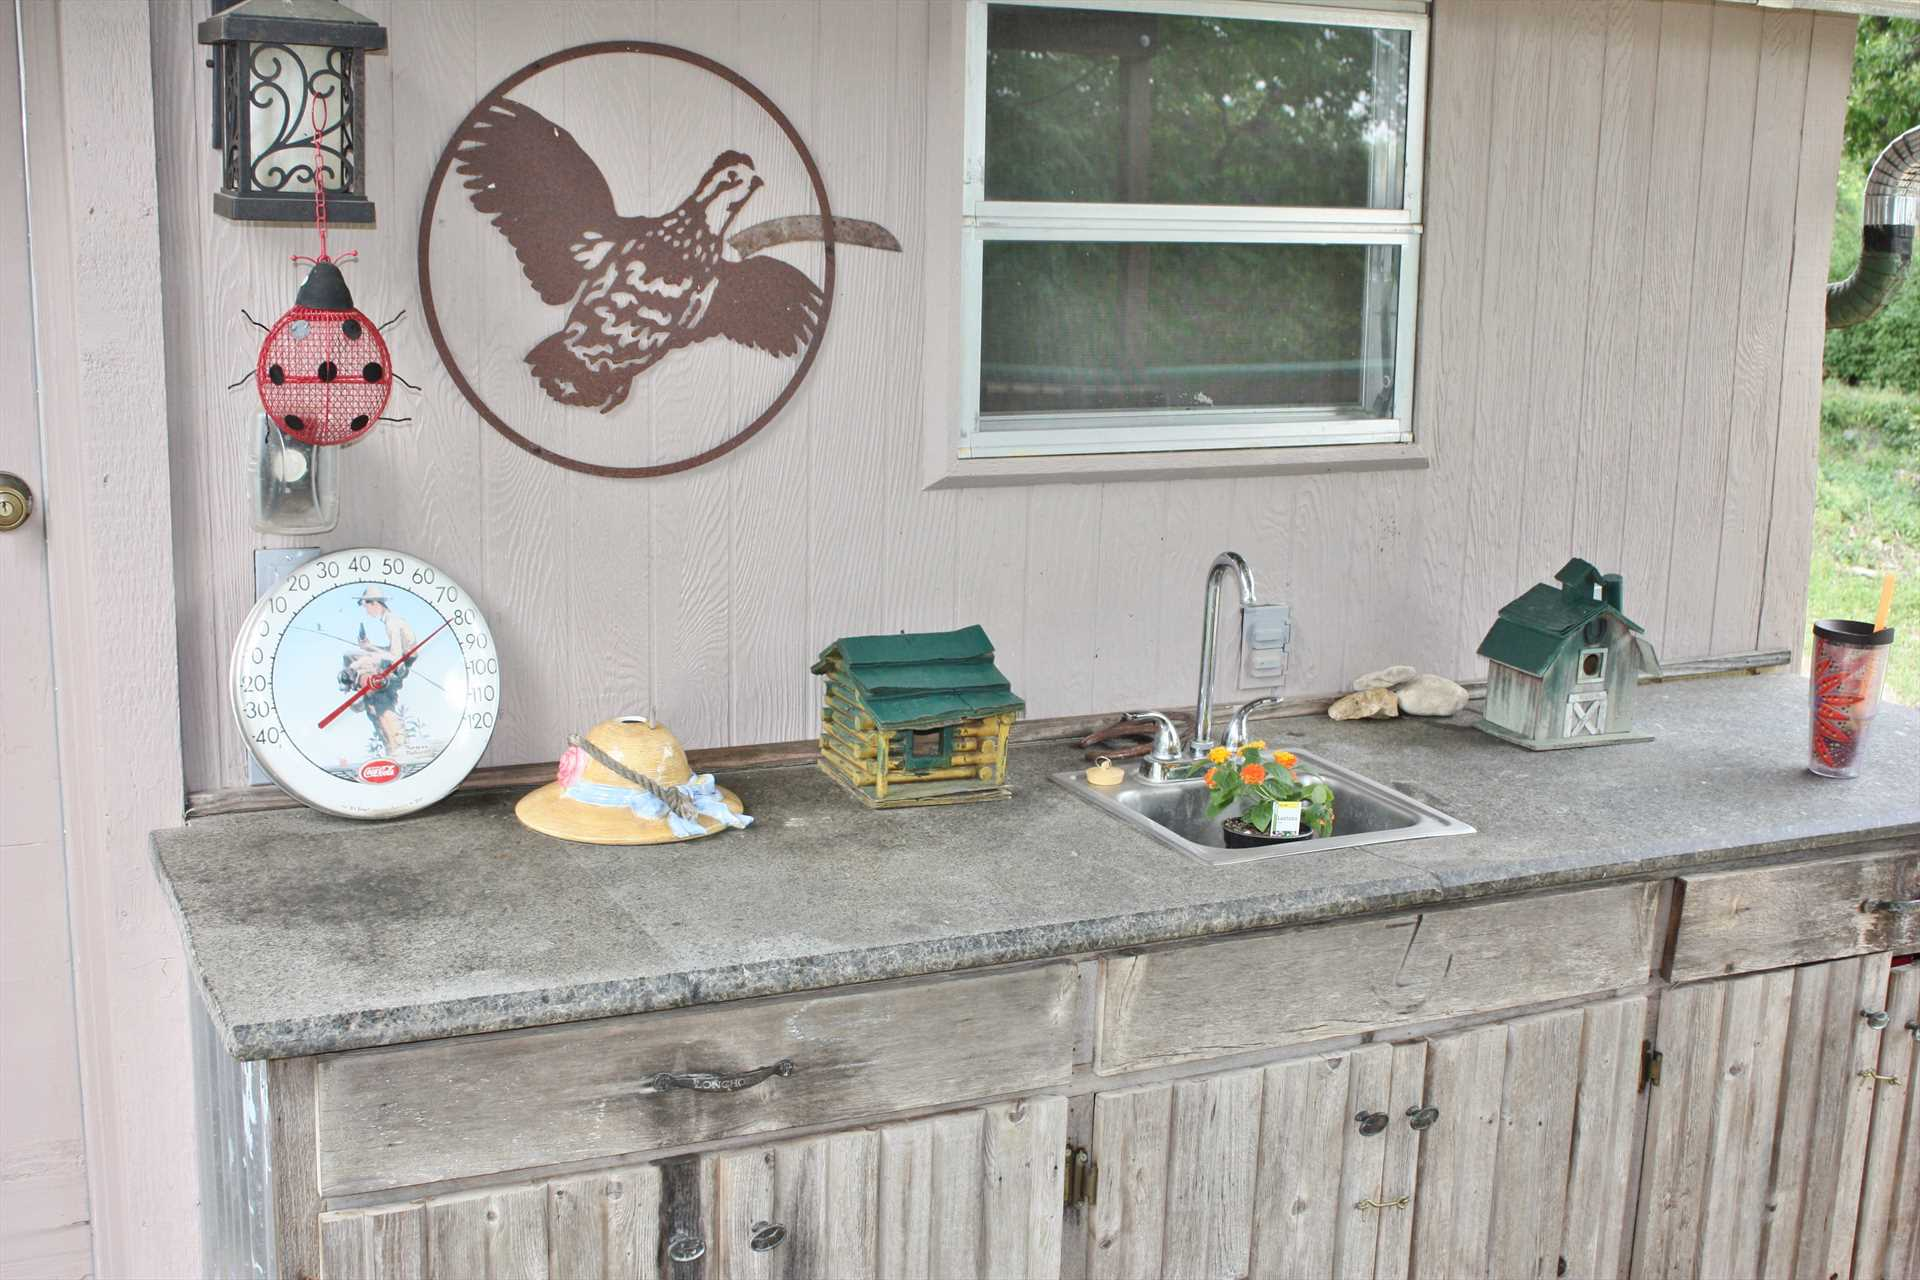 Check out the outside bar and serving area! It's all part of the spirit of convenience and fun at Feather Trees.